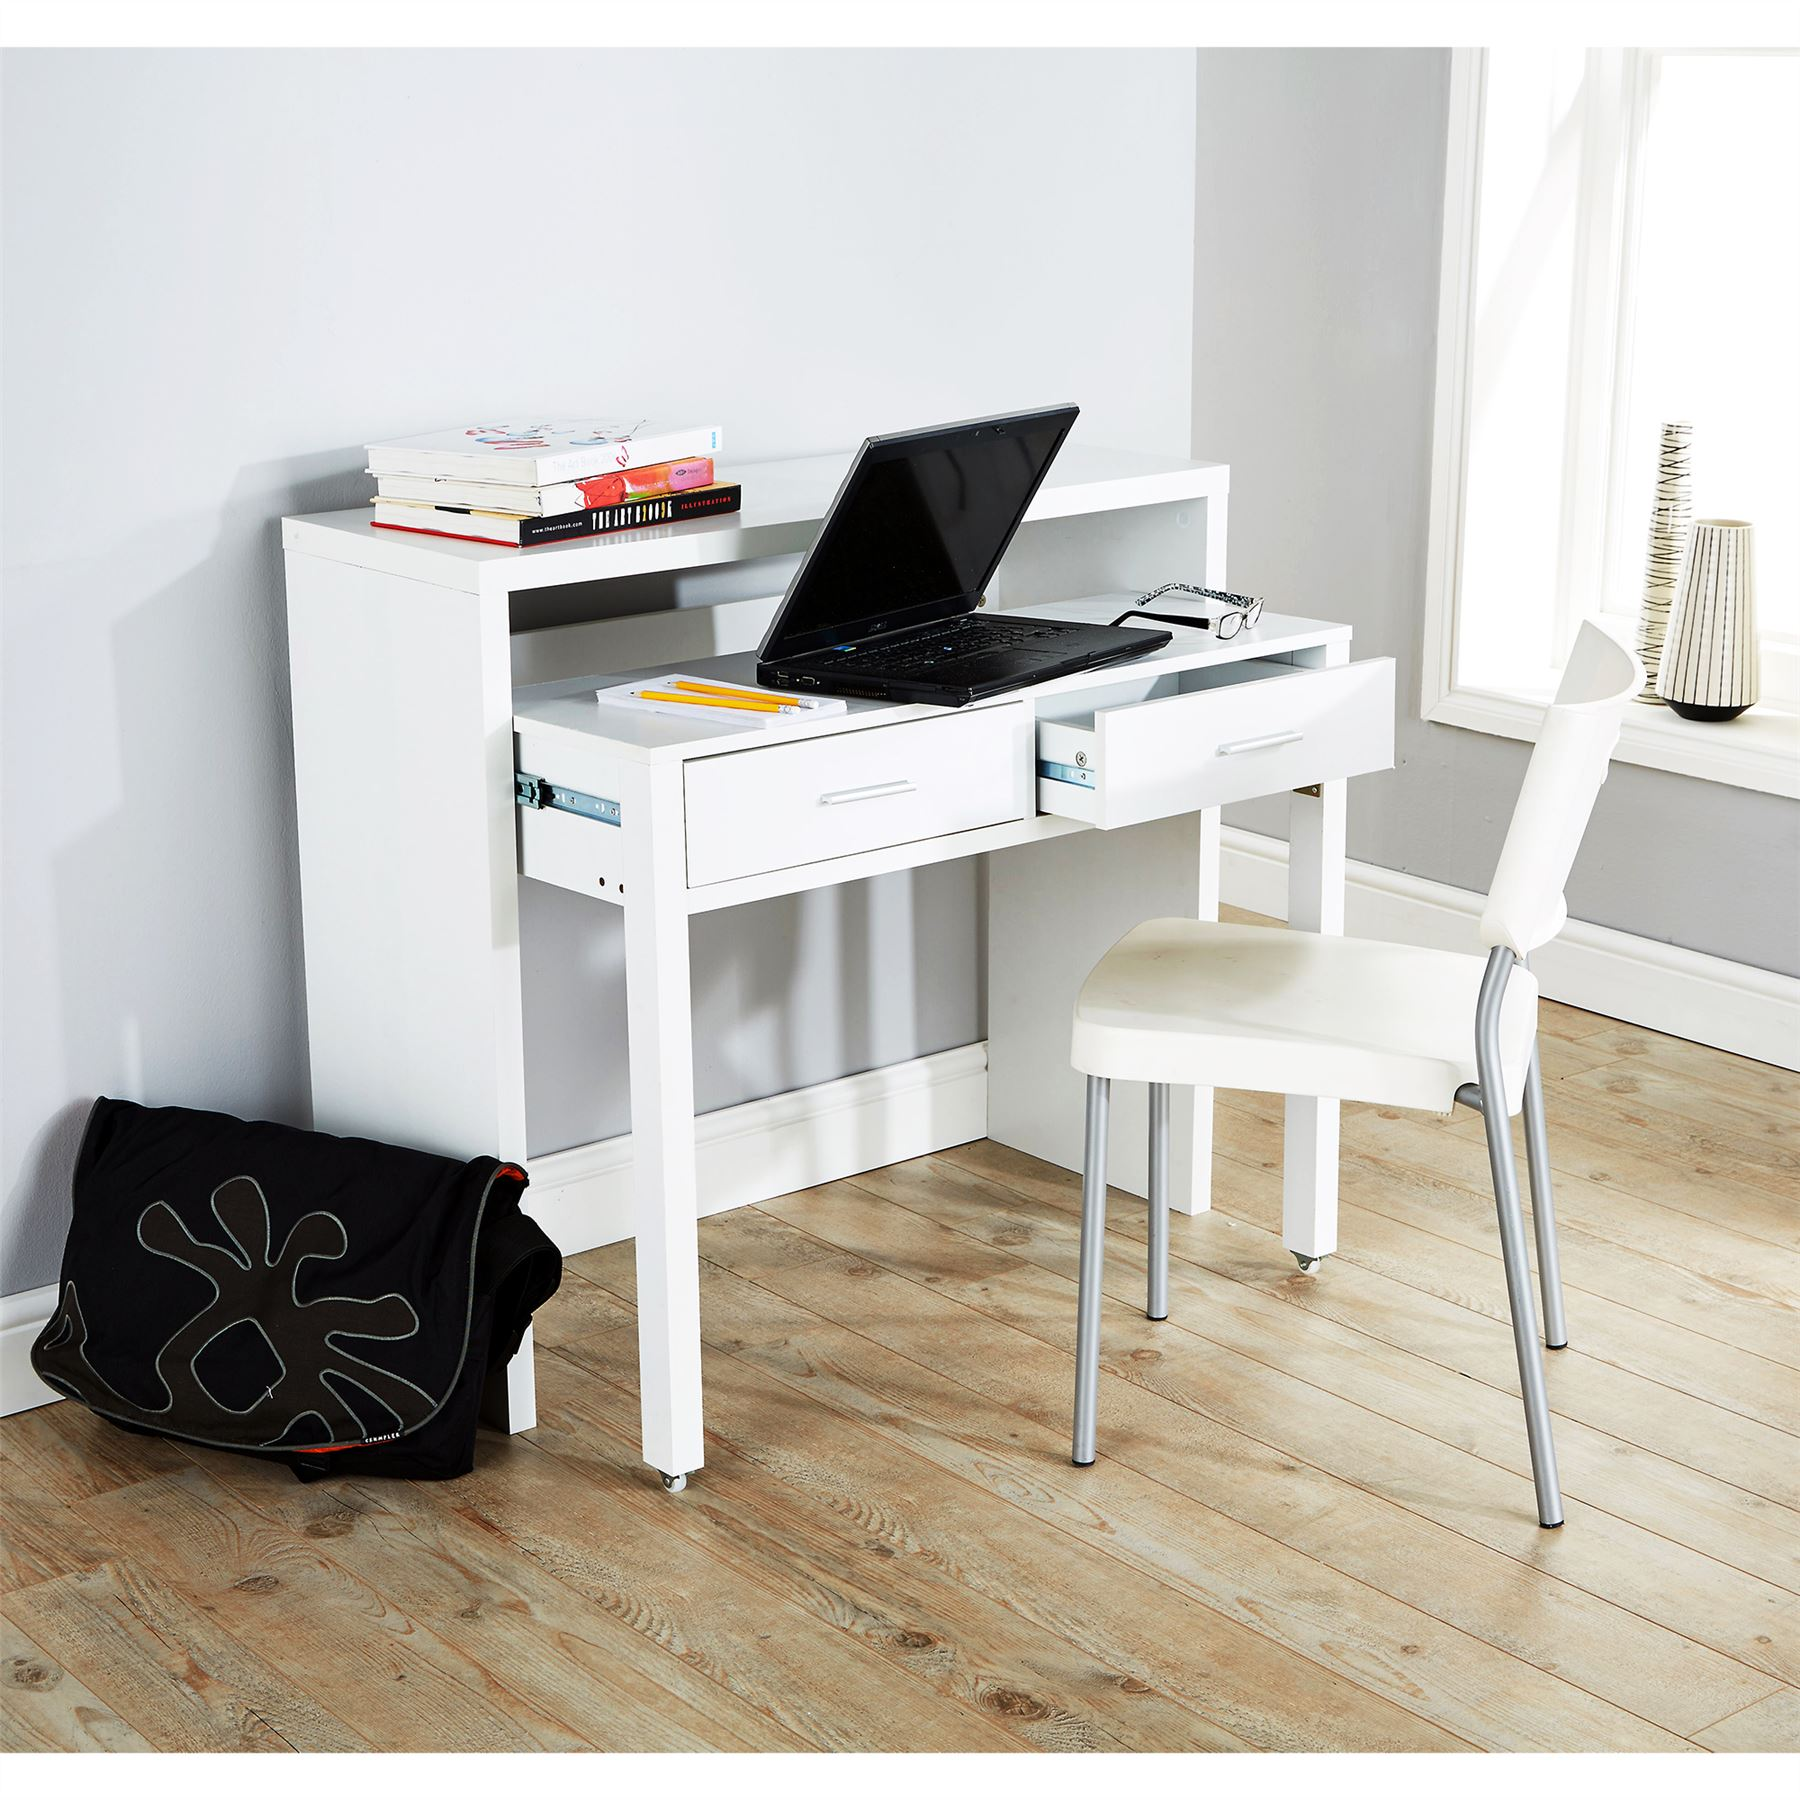 laptop desk wall convertible decor out table storage homcom with shelf mounted white fold home